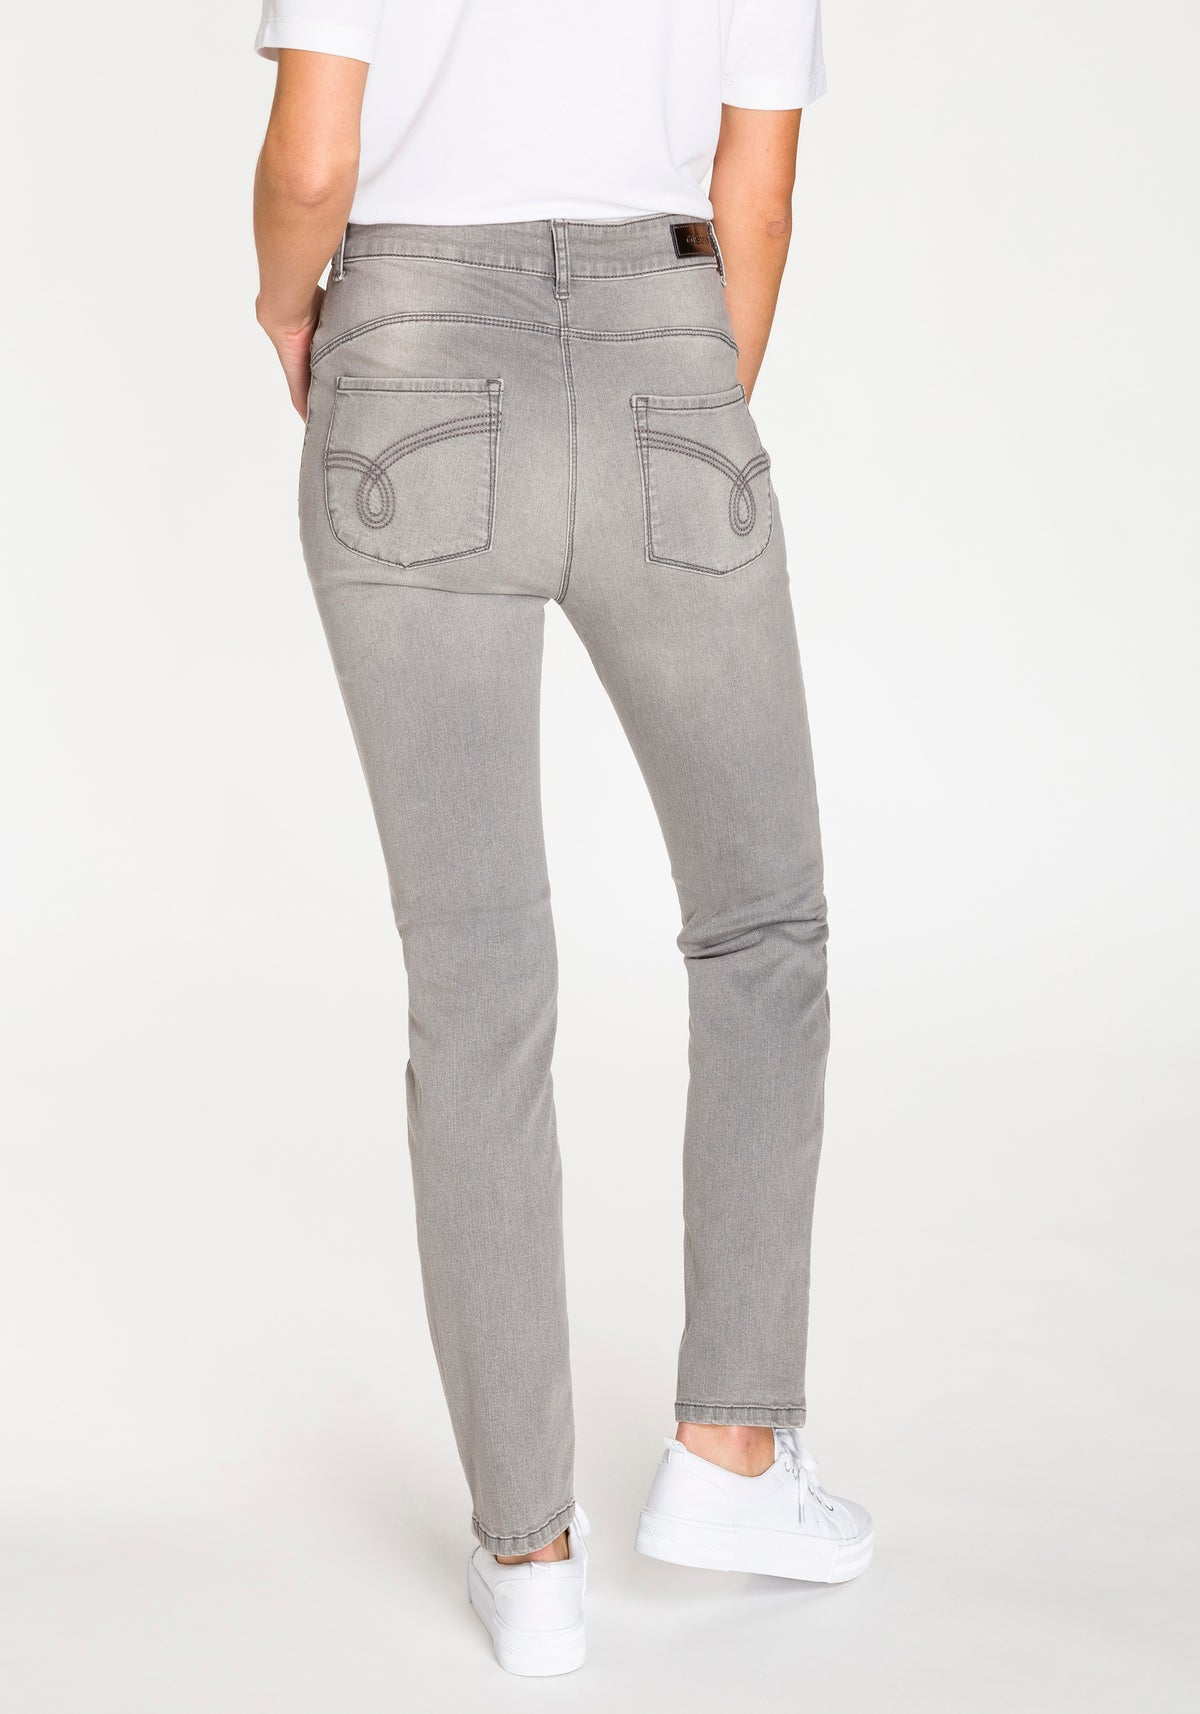 Mona Fit Slim Jean